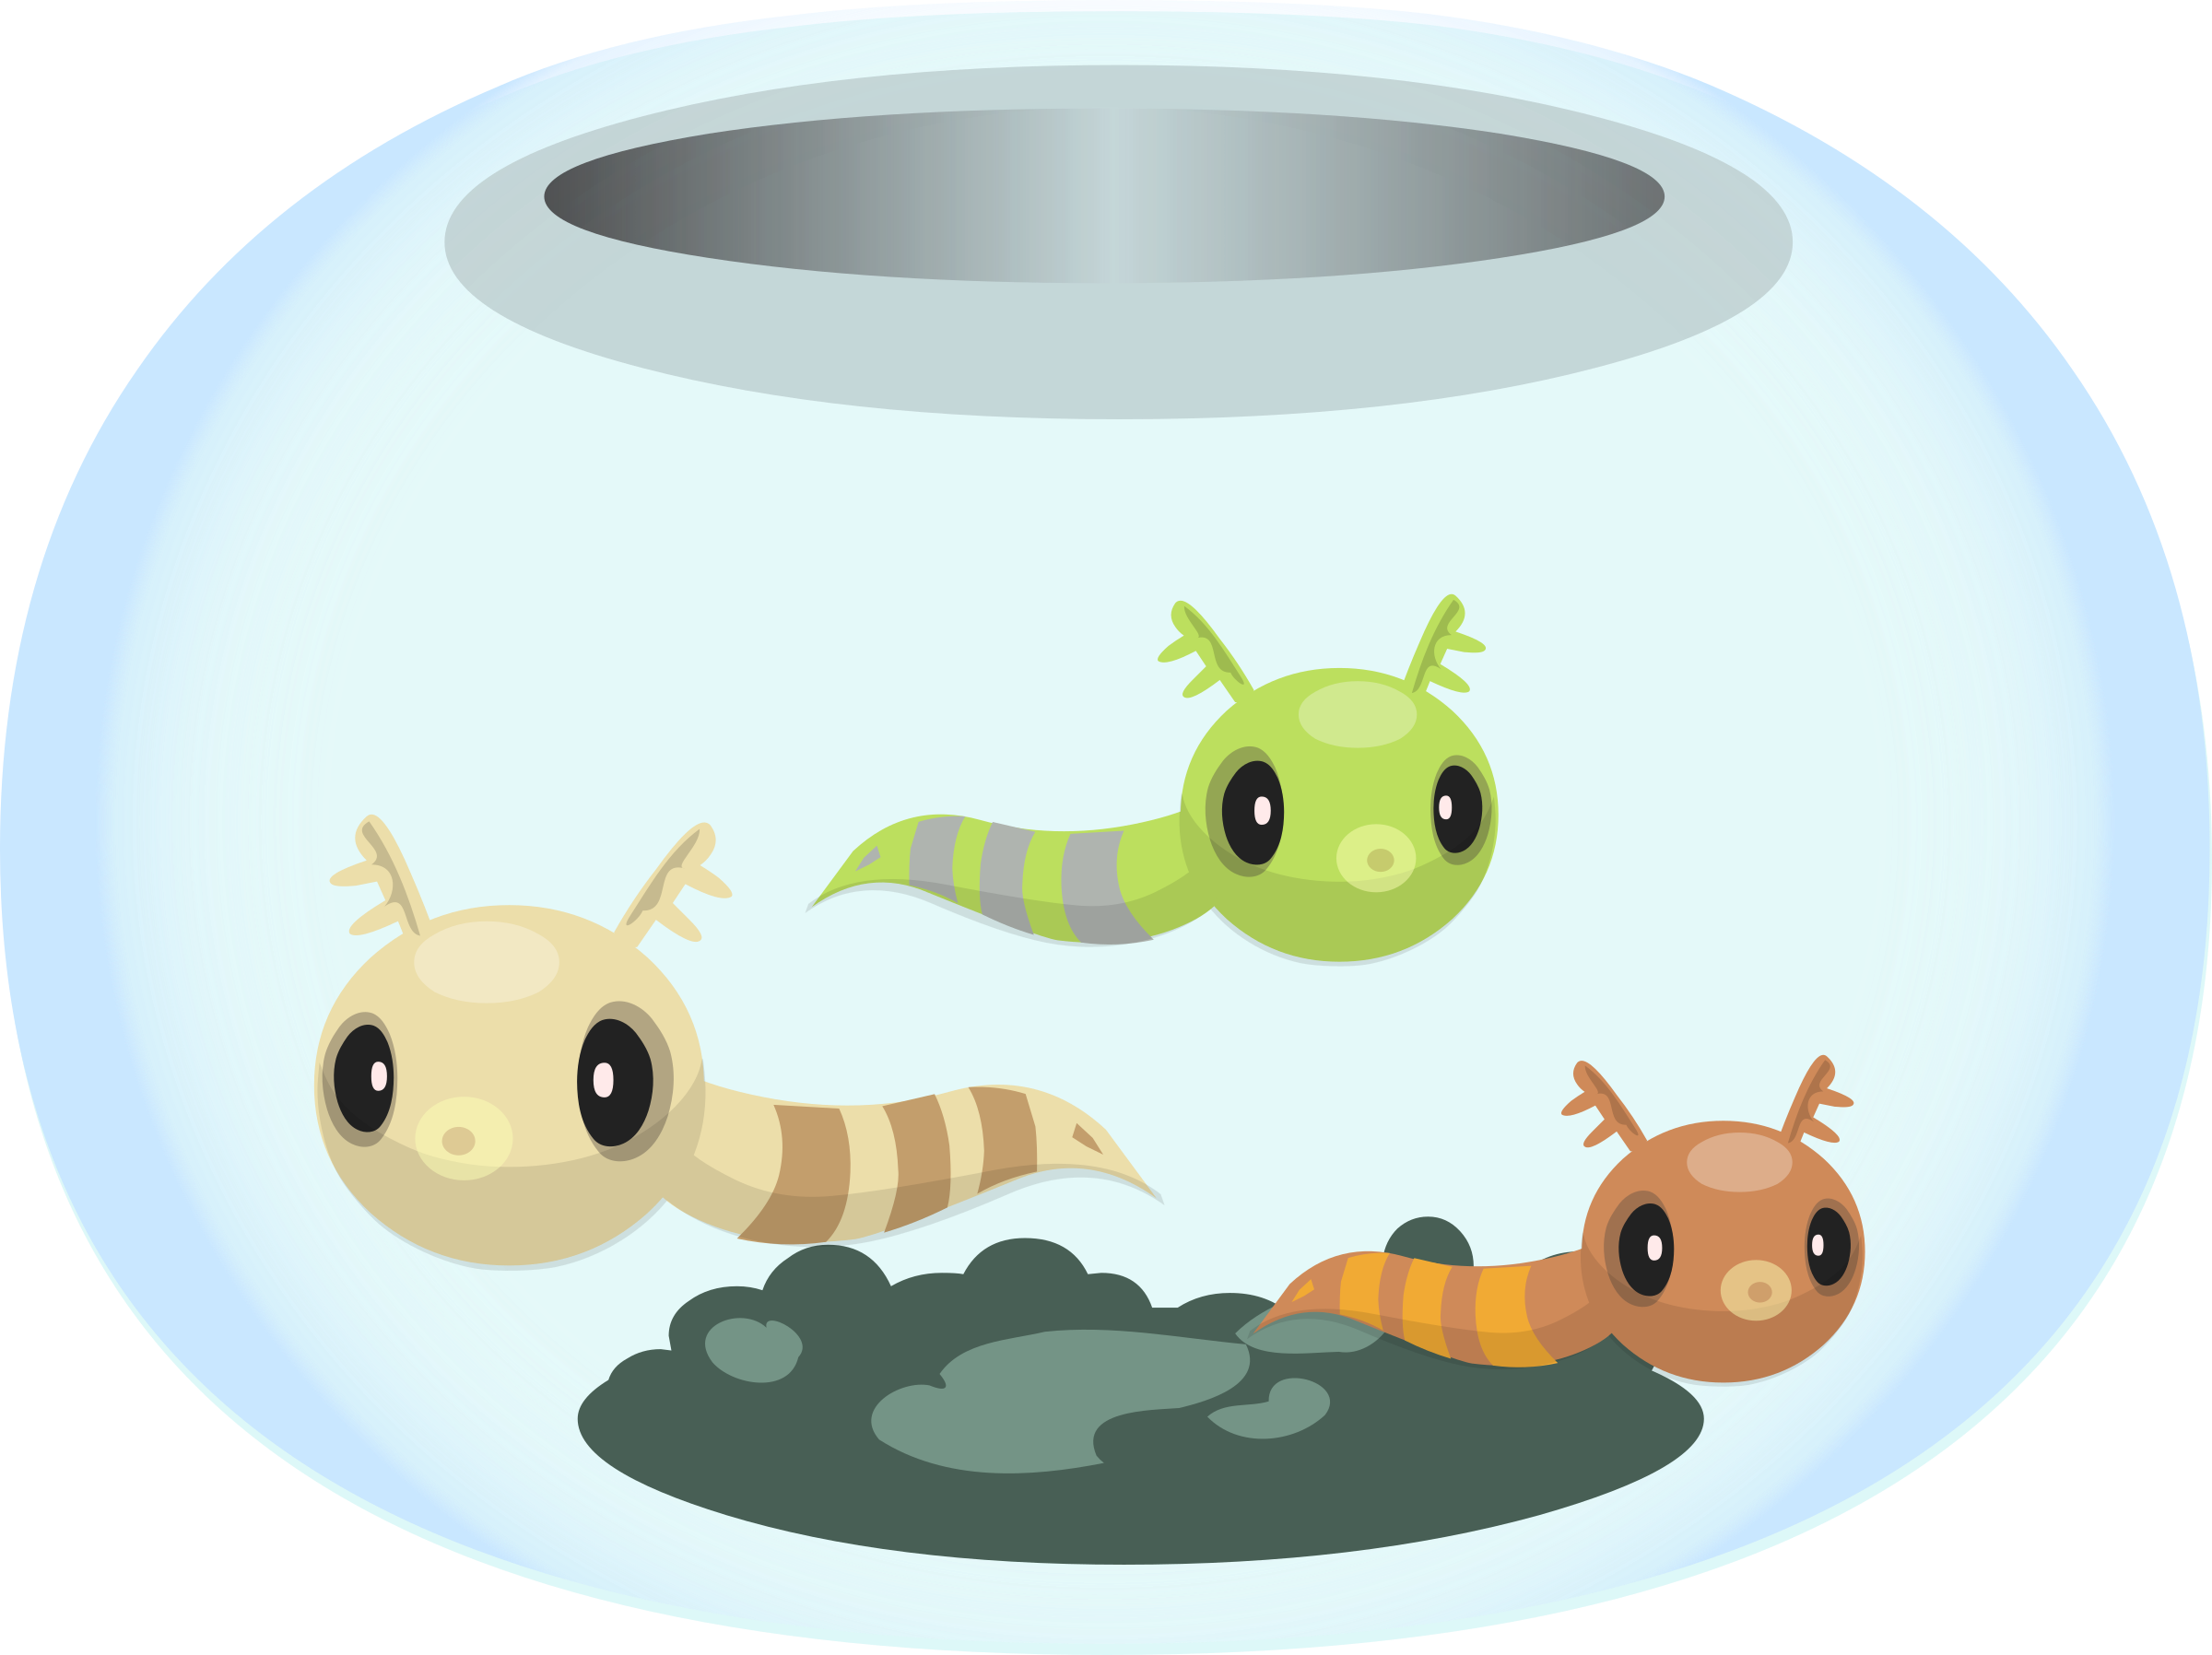 Clipart of a fish bowl freeuse Clipart - Firebog fishbowl from Glitch remix freeuse